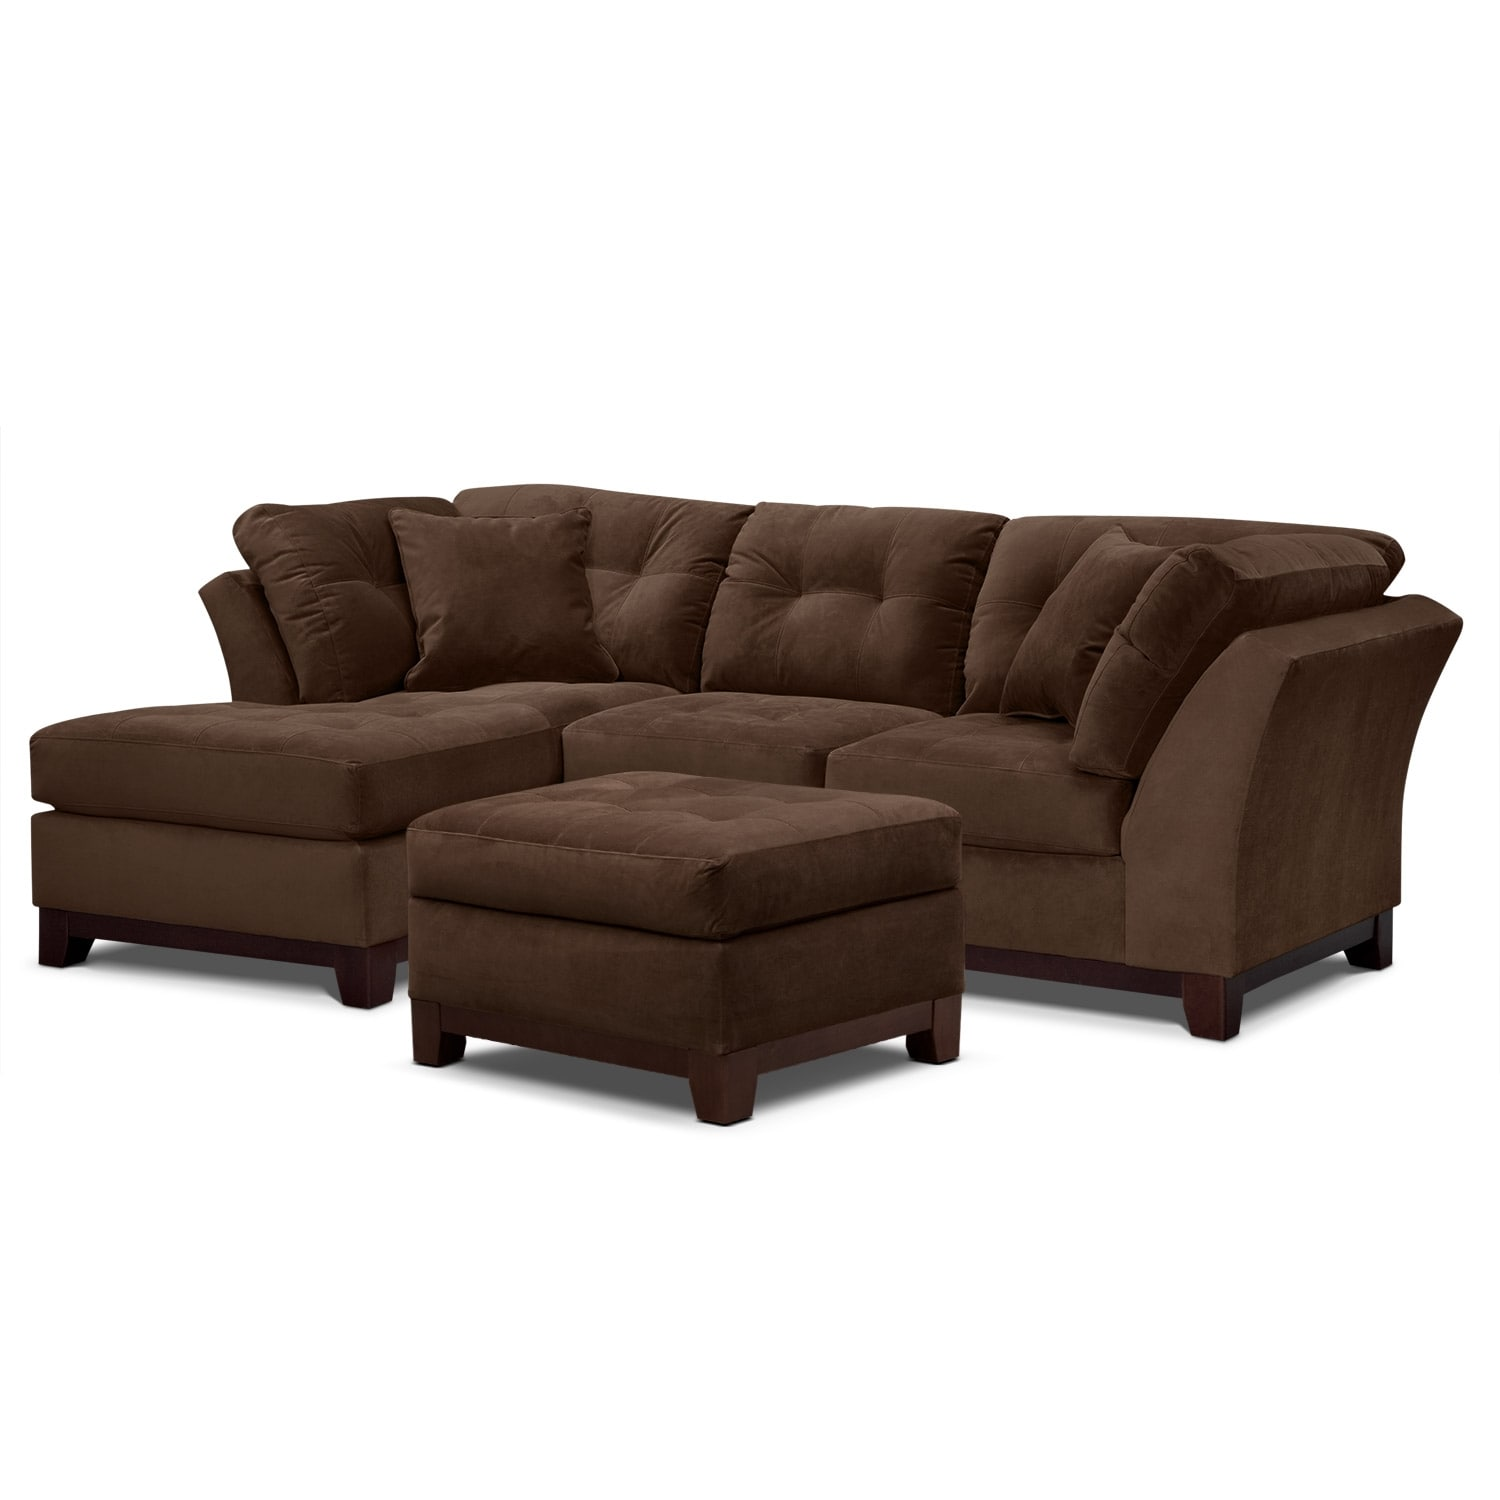 Living Room Furniture - Solace Chocolate II 2 Pc. Sectional (Alternate) and Ottoman